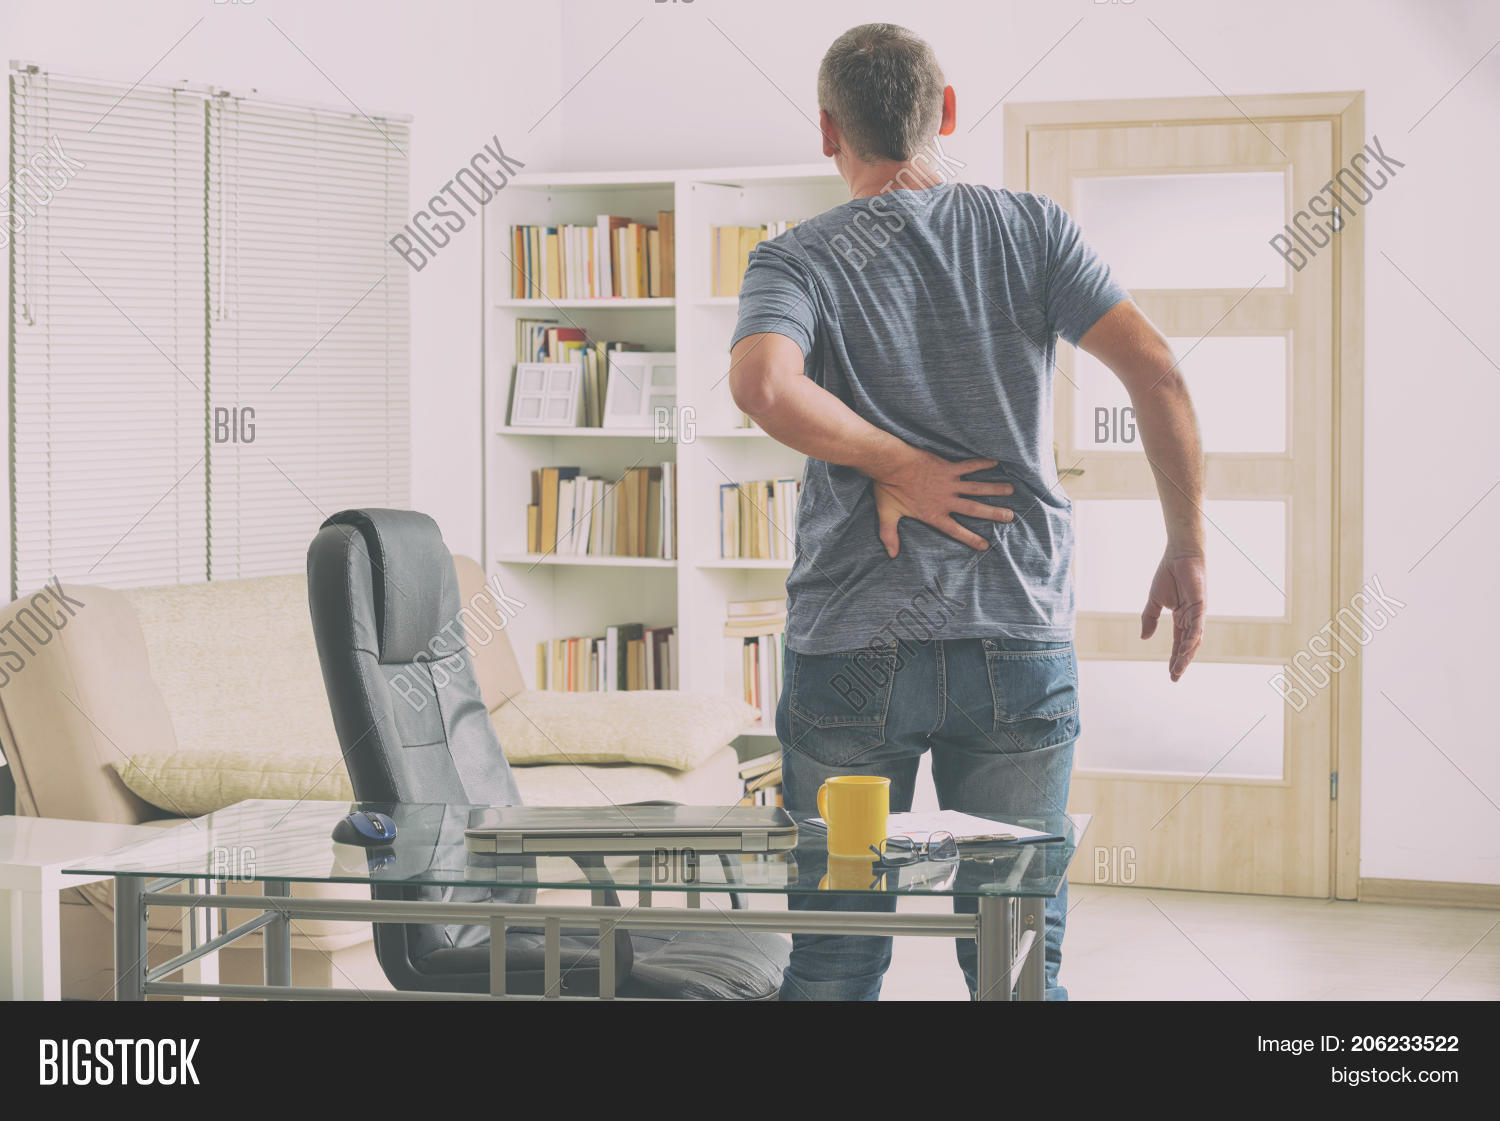 Man In Home Office Suffering From Low Back Pain Standing Near Desk With  Notebook, Papers